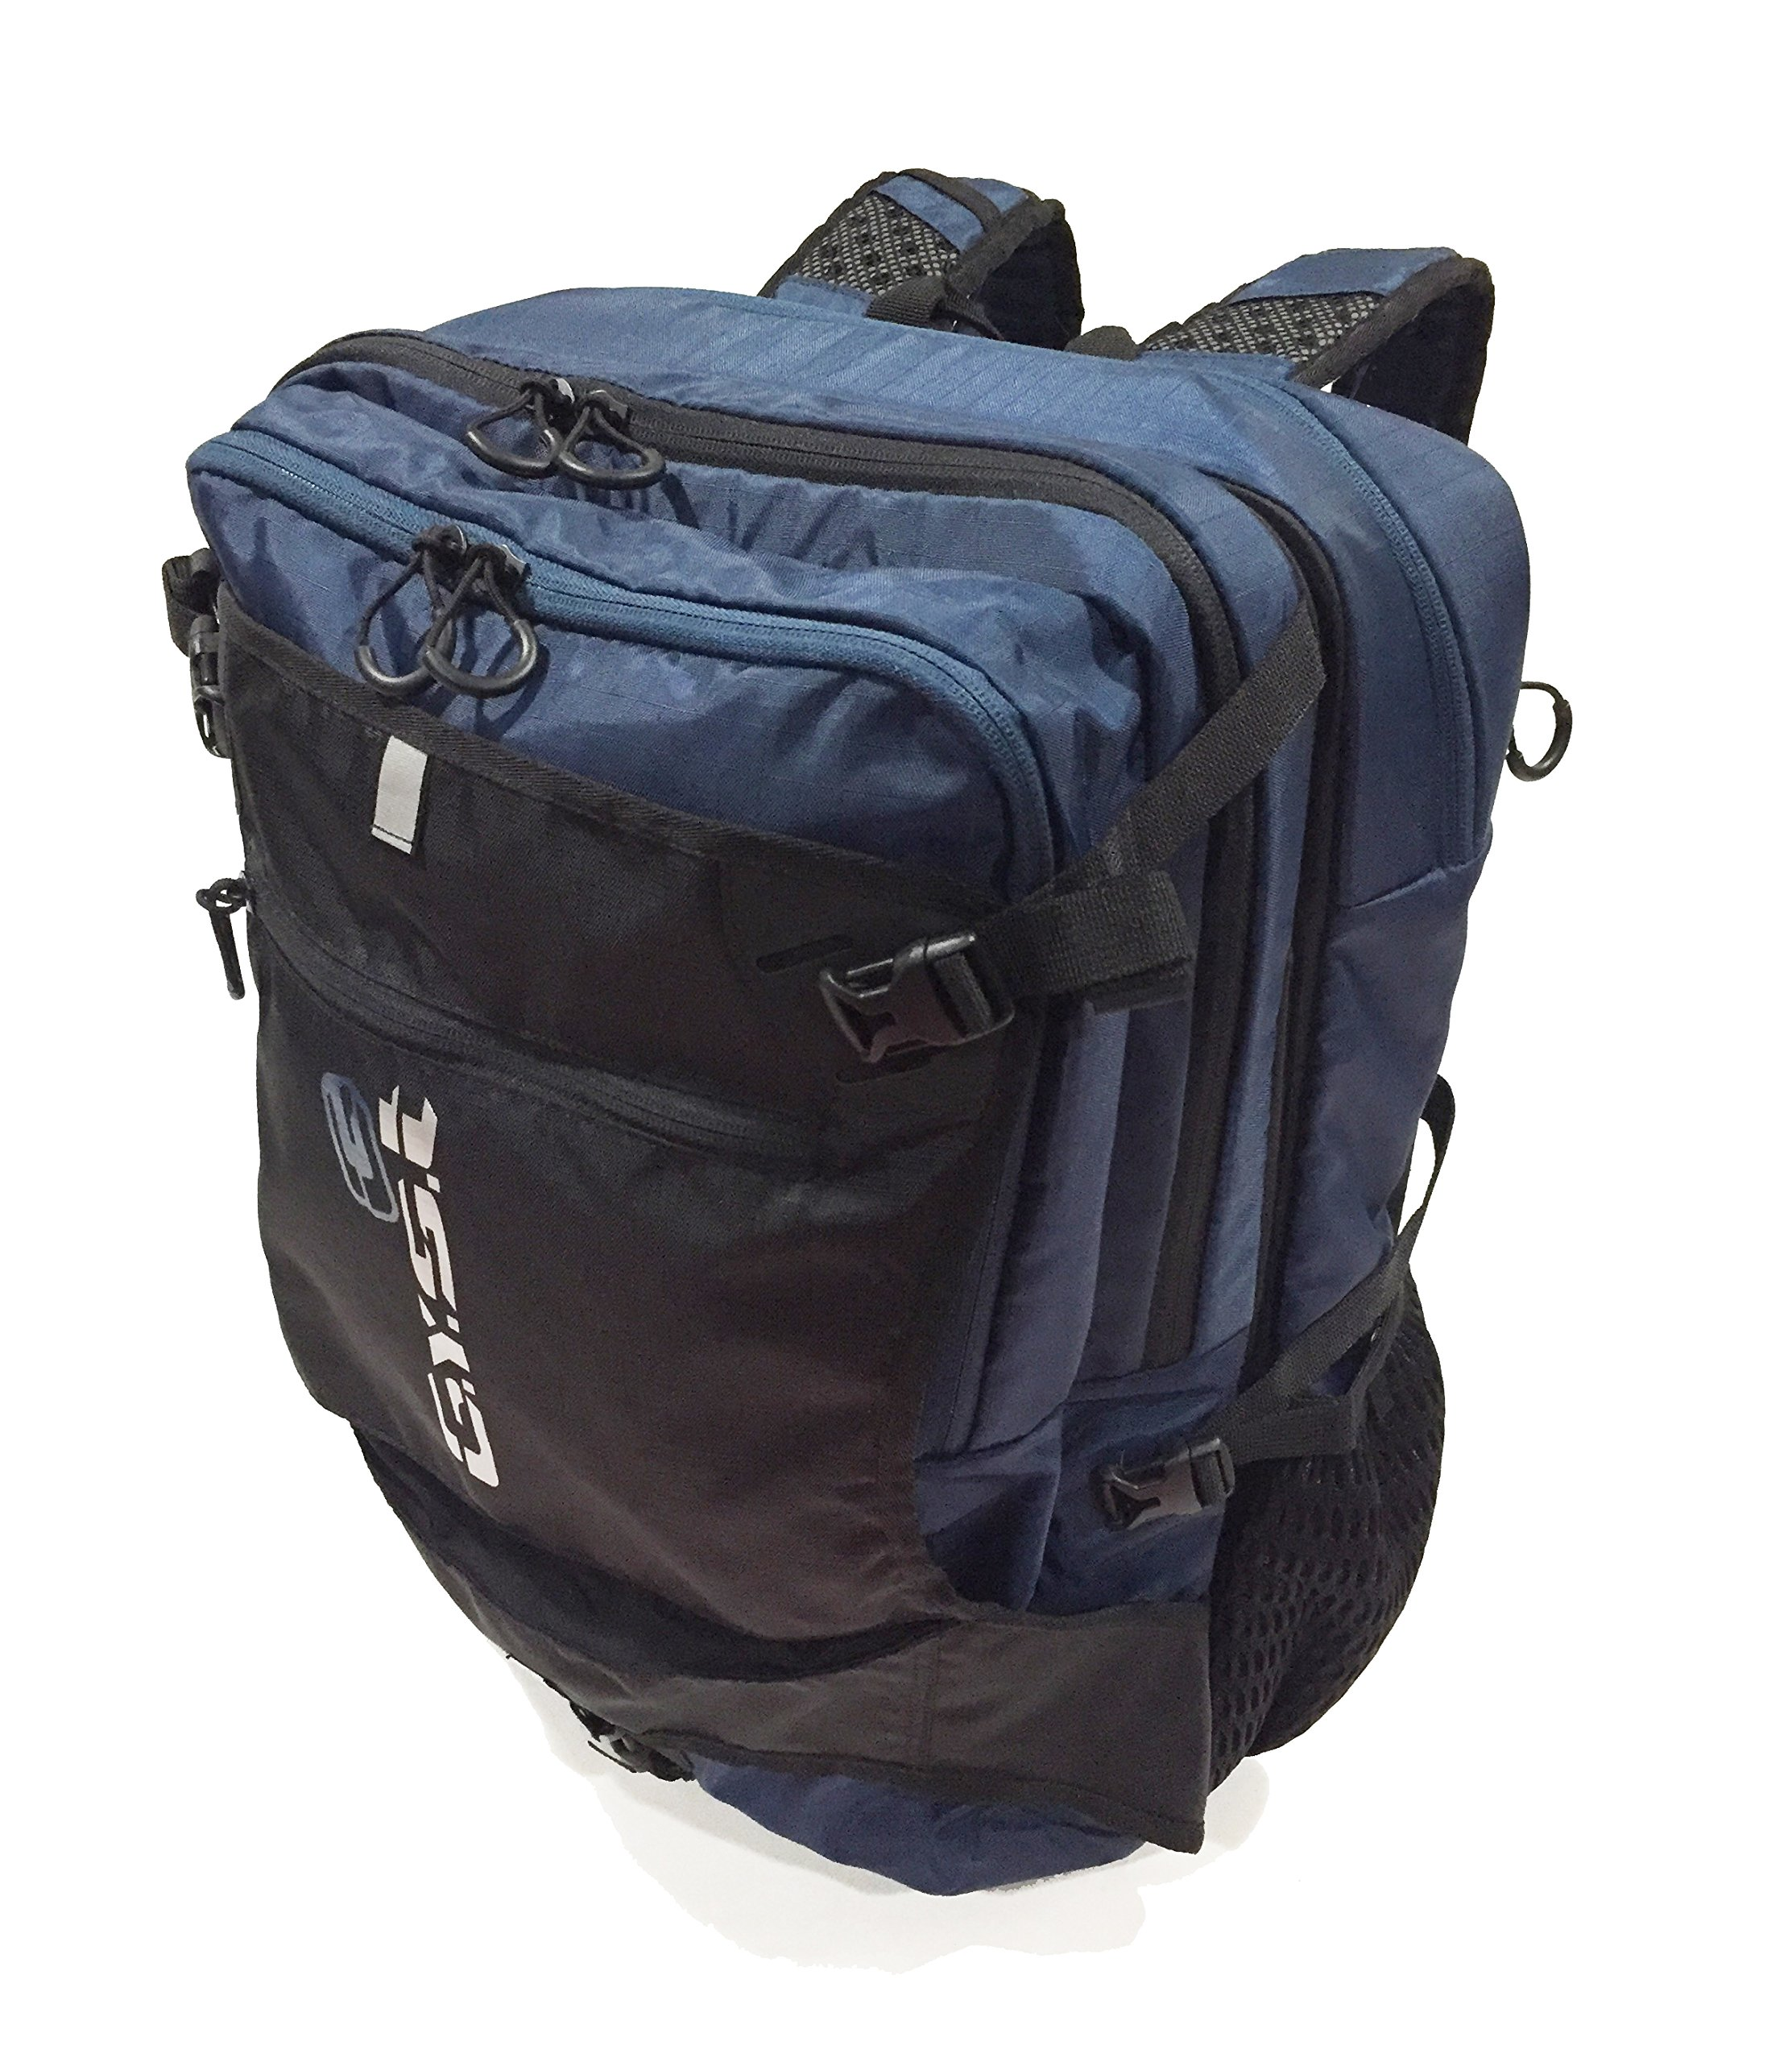 GYST BP1-18 Water repellent Fabric and Reverse Mounted Backpack, Black/Blue